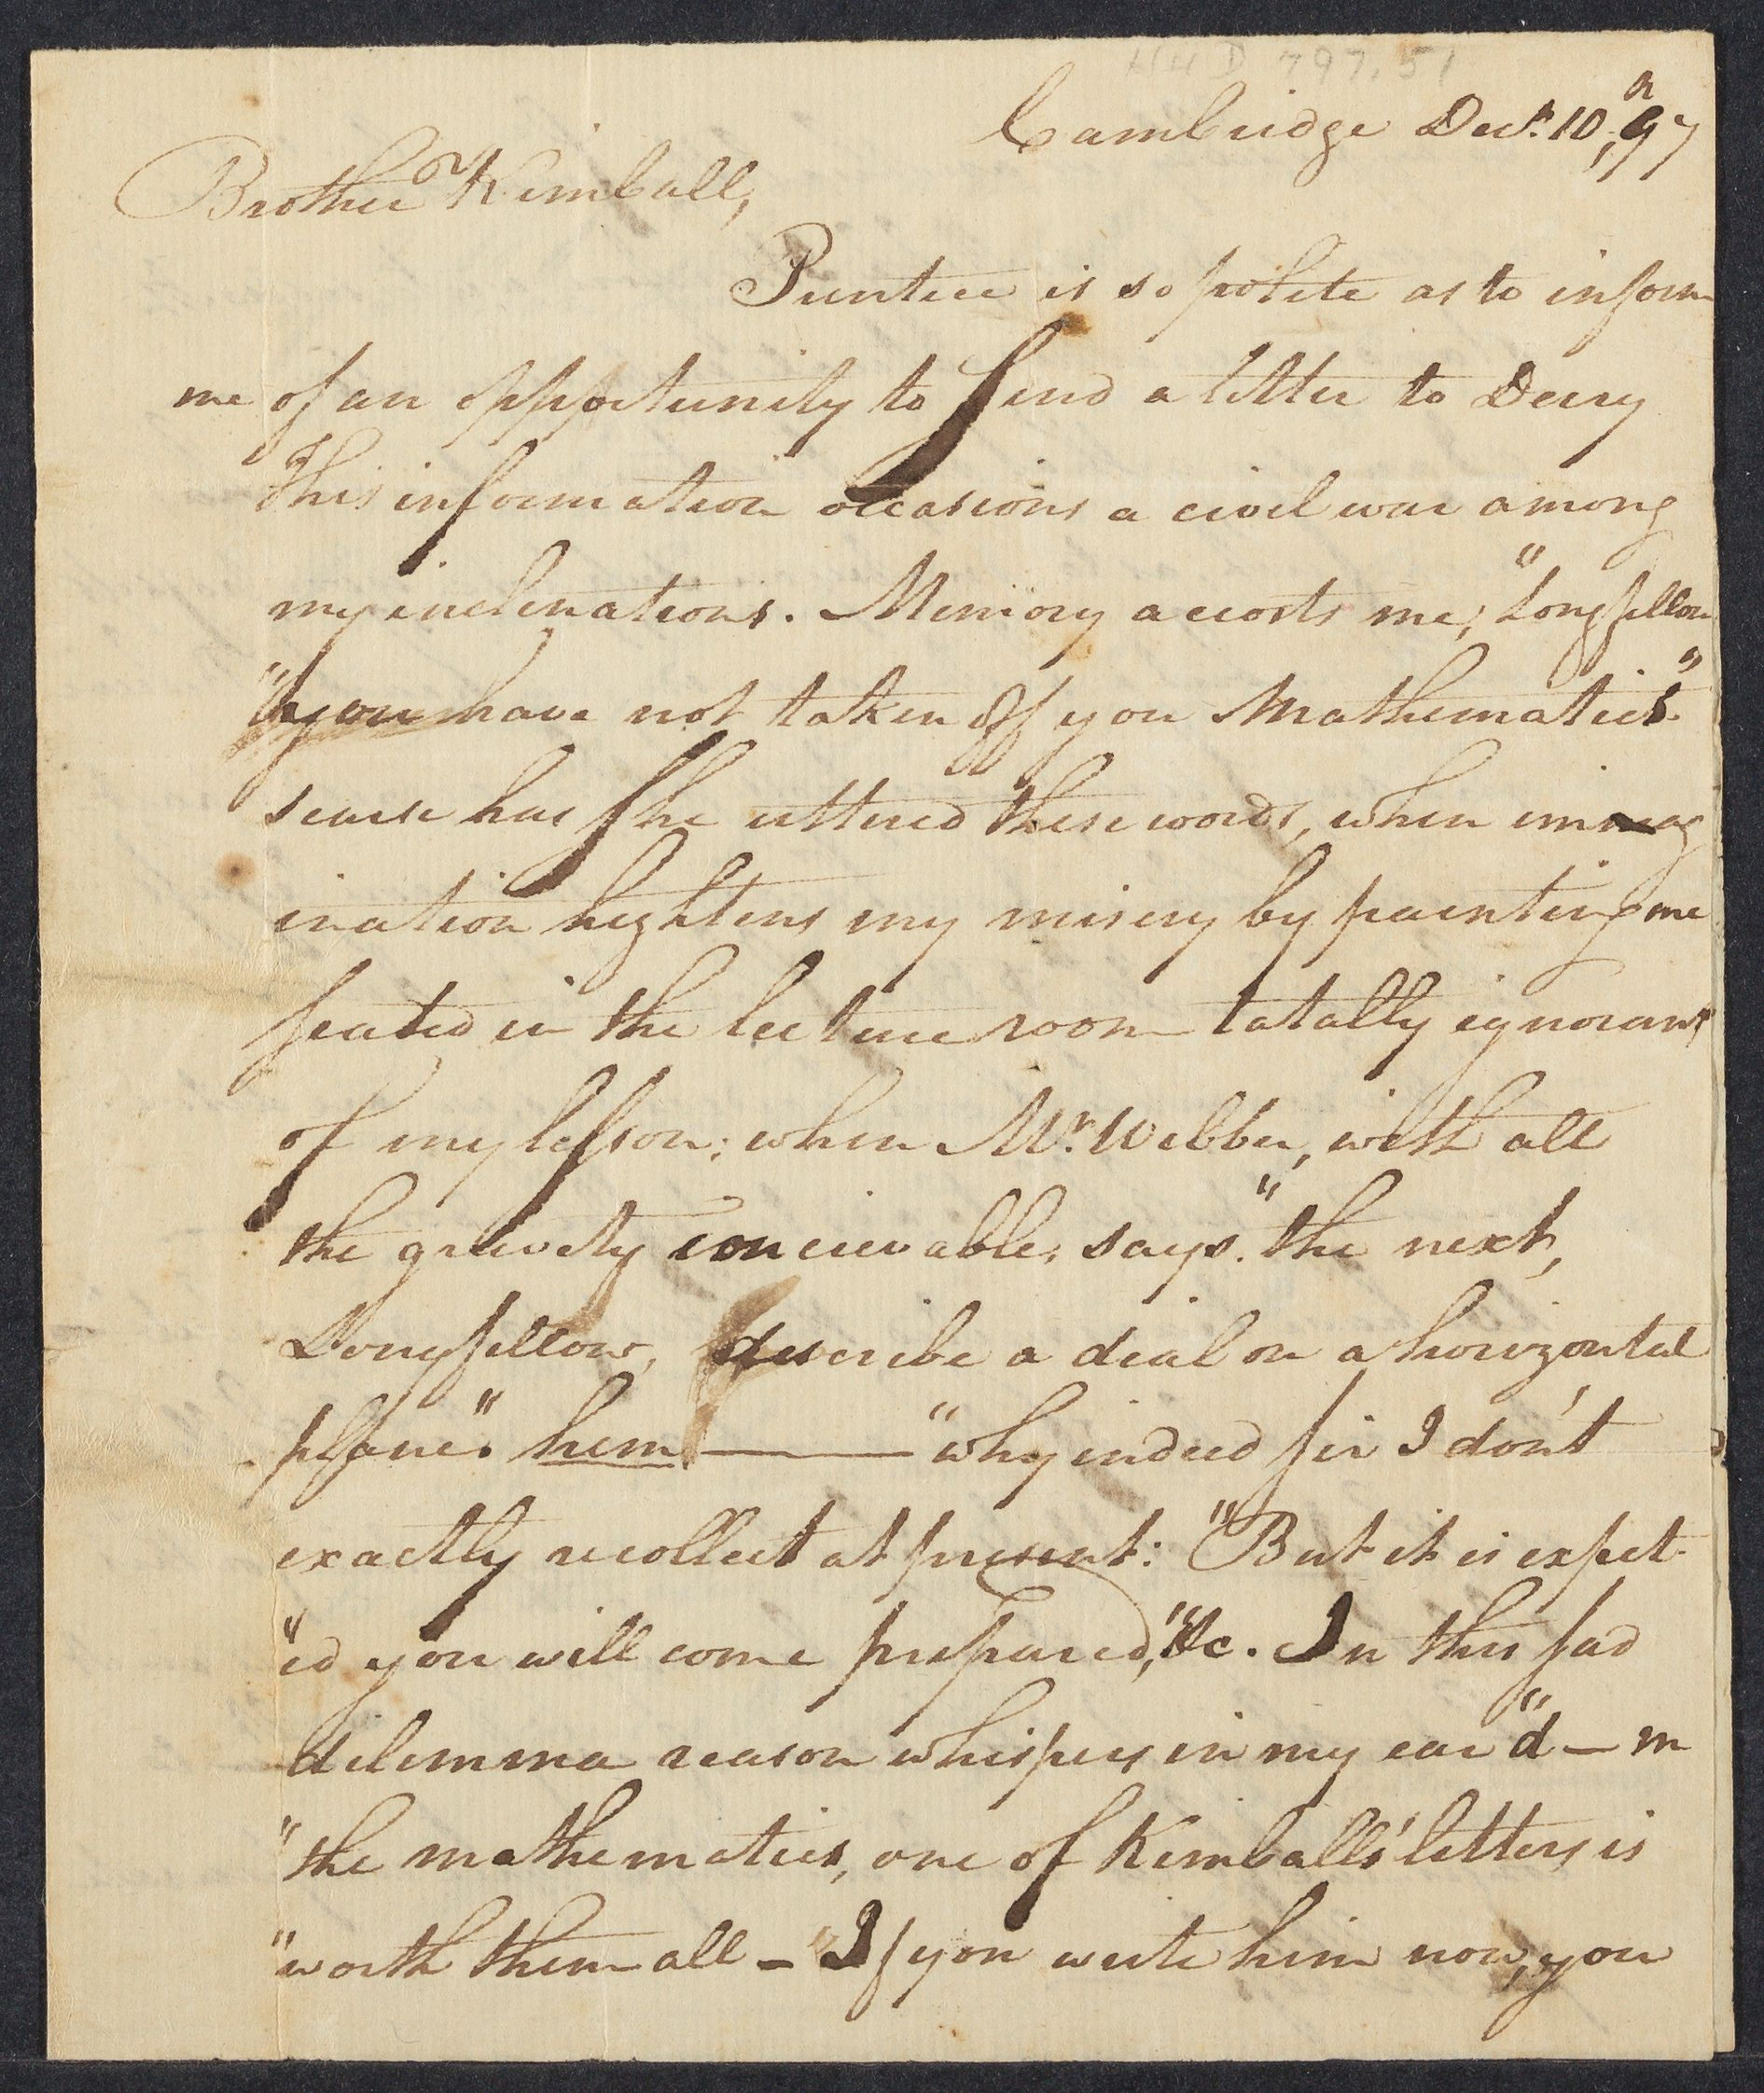 Letter from Stephen Longfellow to Jabez Kimball, 1797 December 10